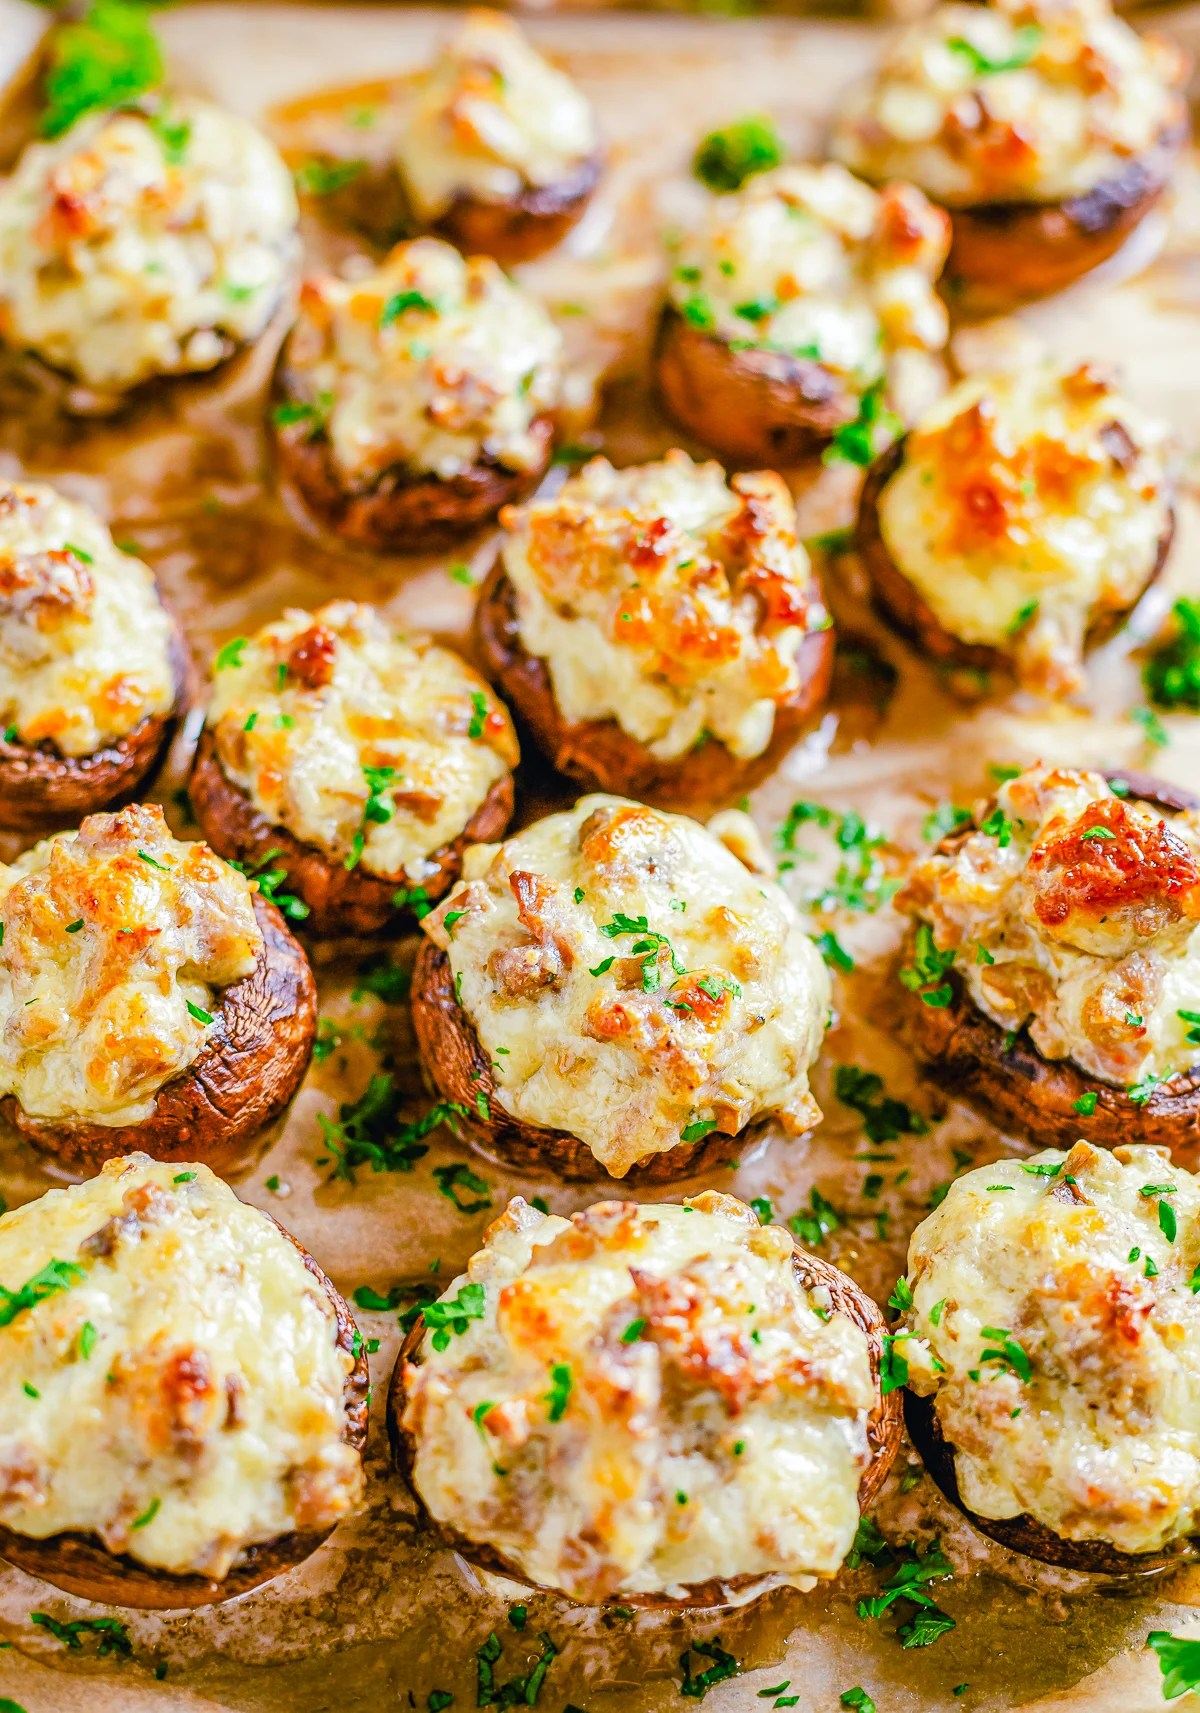 Overhead close up of finished Sausage Stuffed Mushrooms on wooden board.